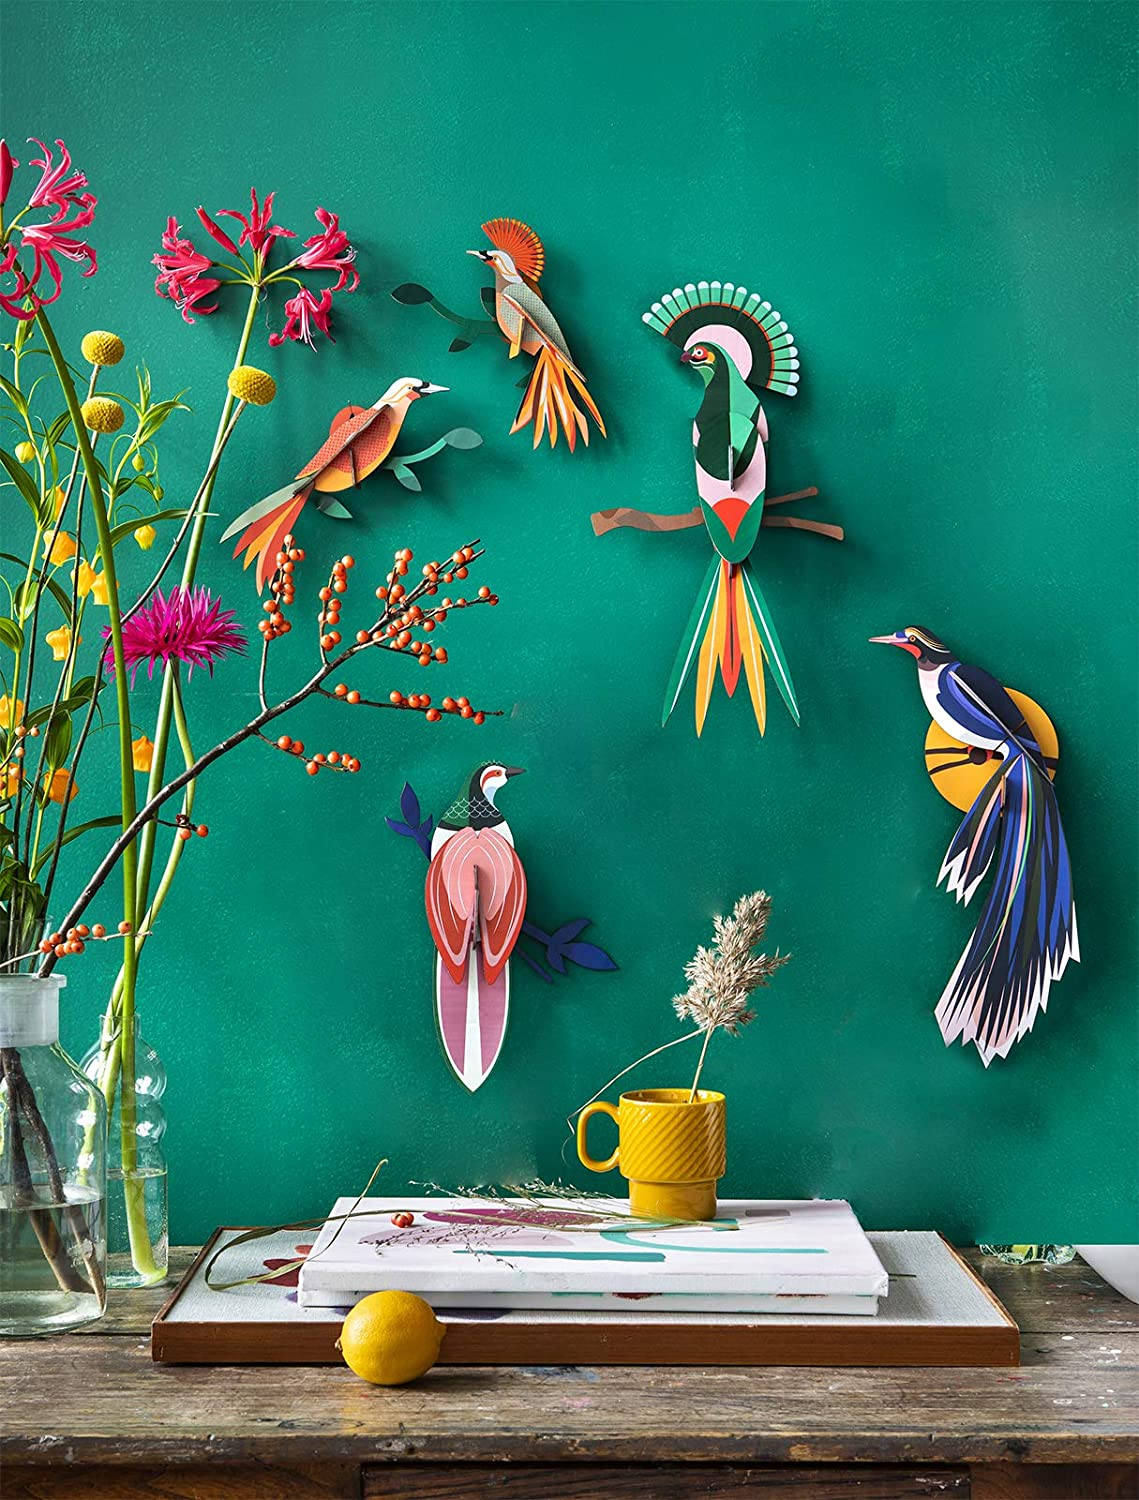 Flores Eco Friendly Unique Wall Decoration Bird Of Paradise Joizi Wall Art From Recycled Cardboard Artwork Sculptures